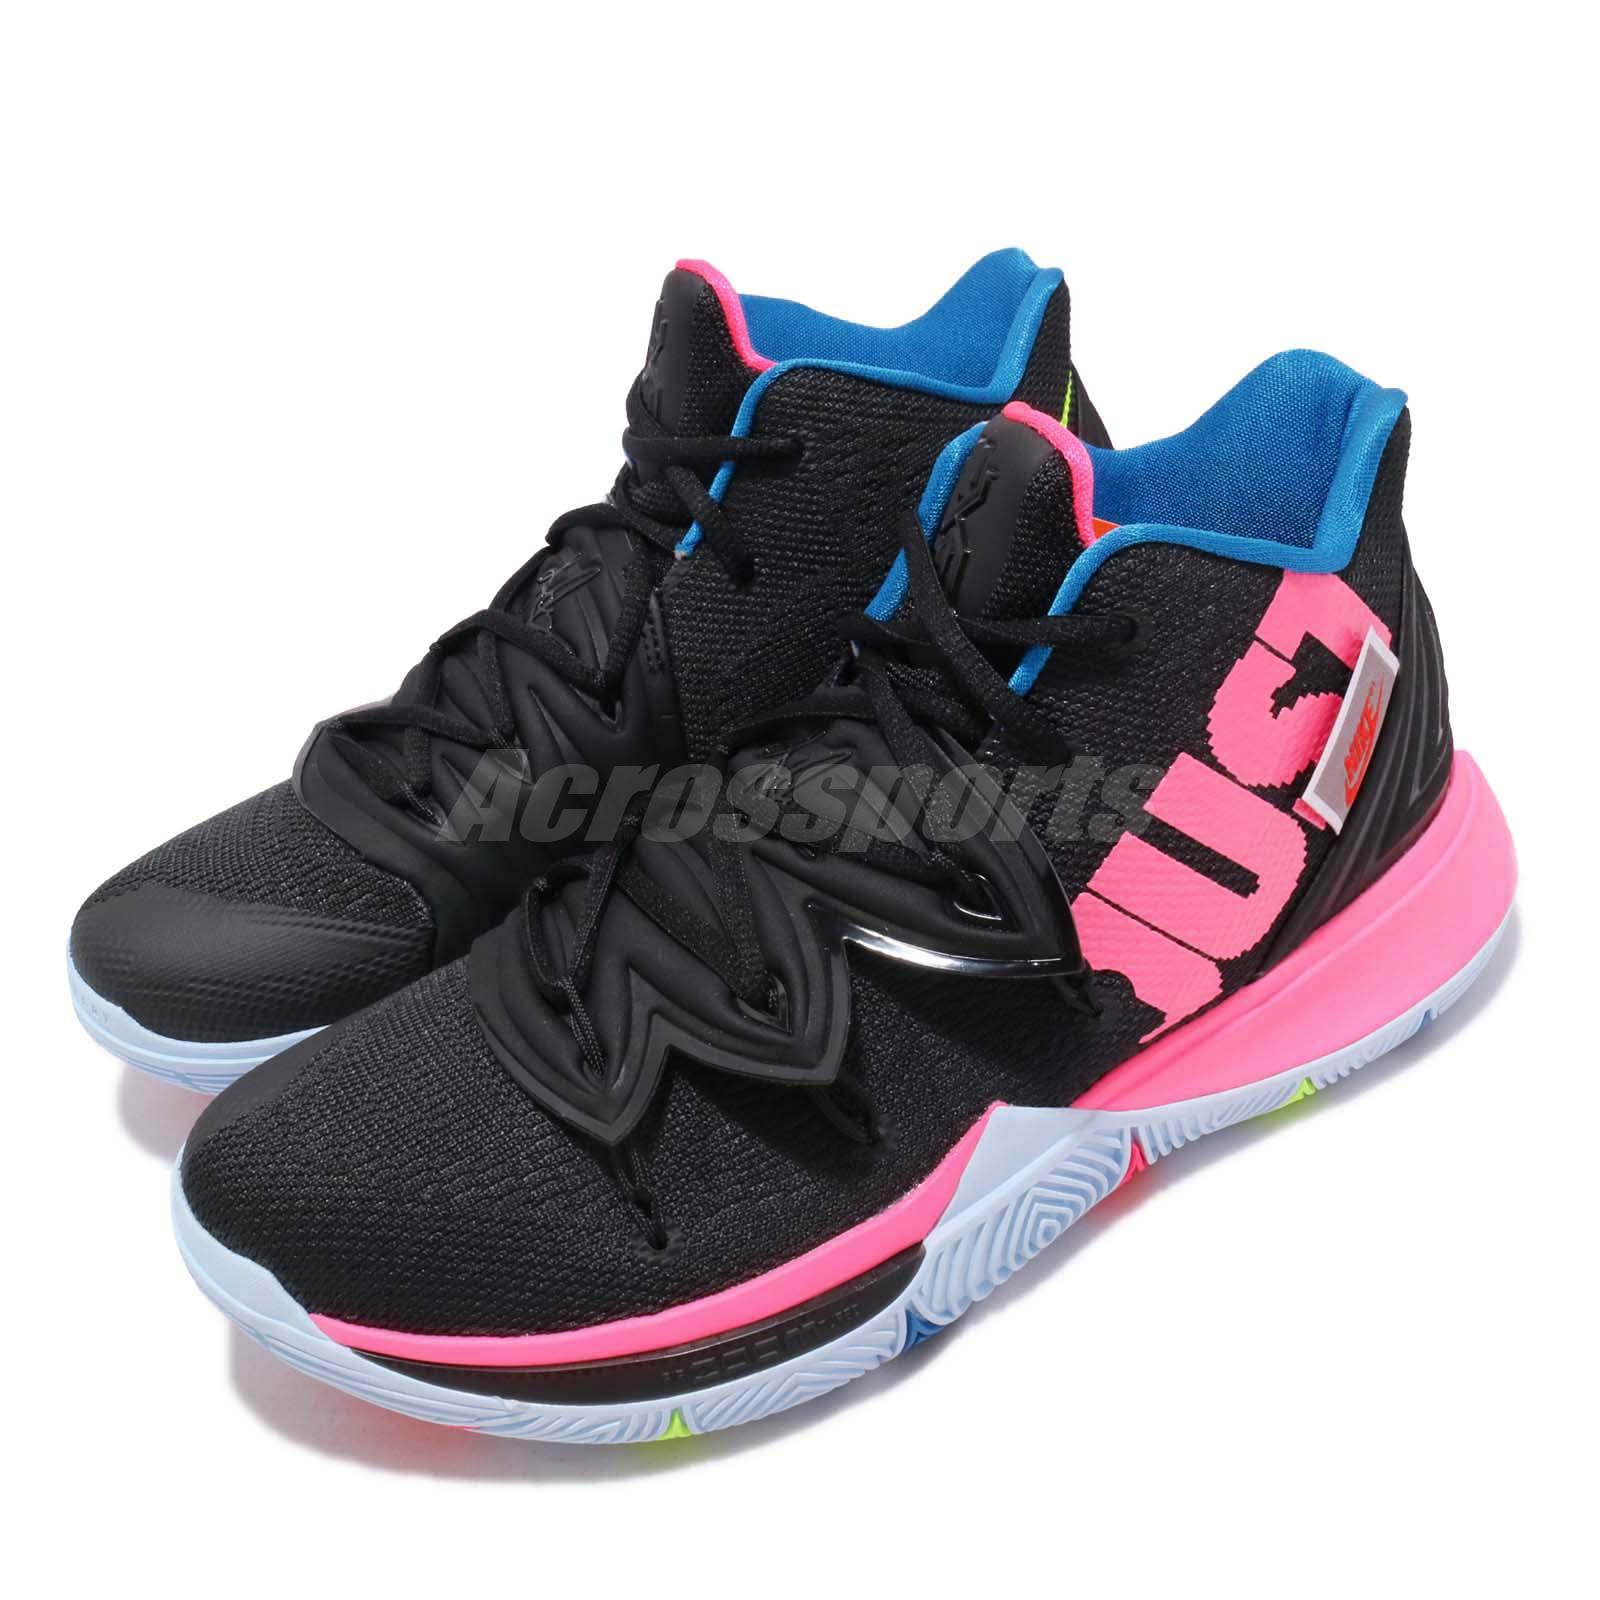 9bdb420562e1 Details about Nike Kyrie 5 EP V Irving Just Do It Black Pink Men Shoes  Sneakers AO2919-003